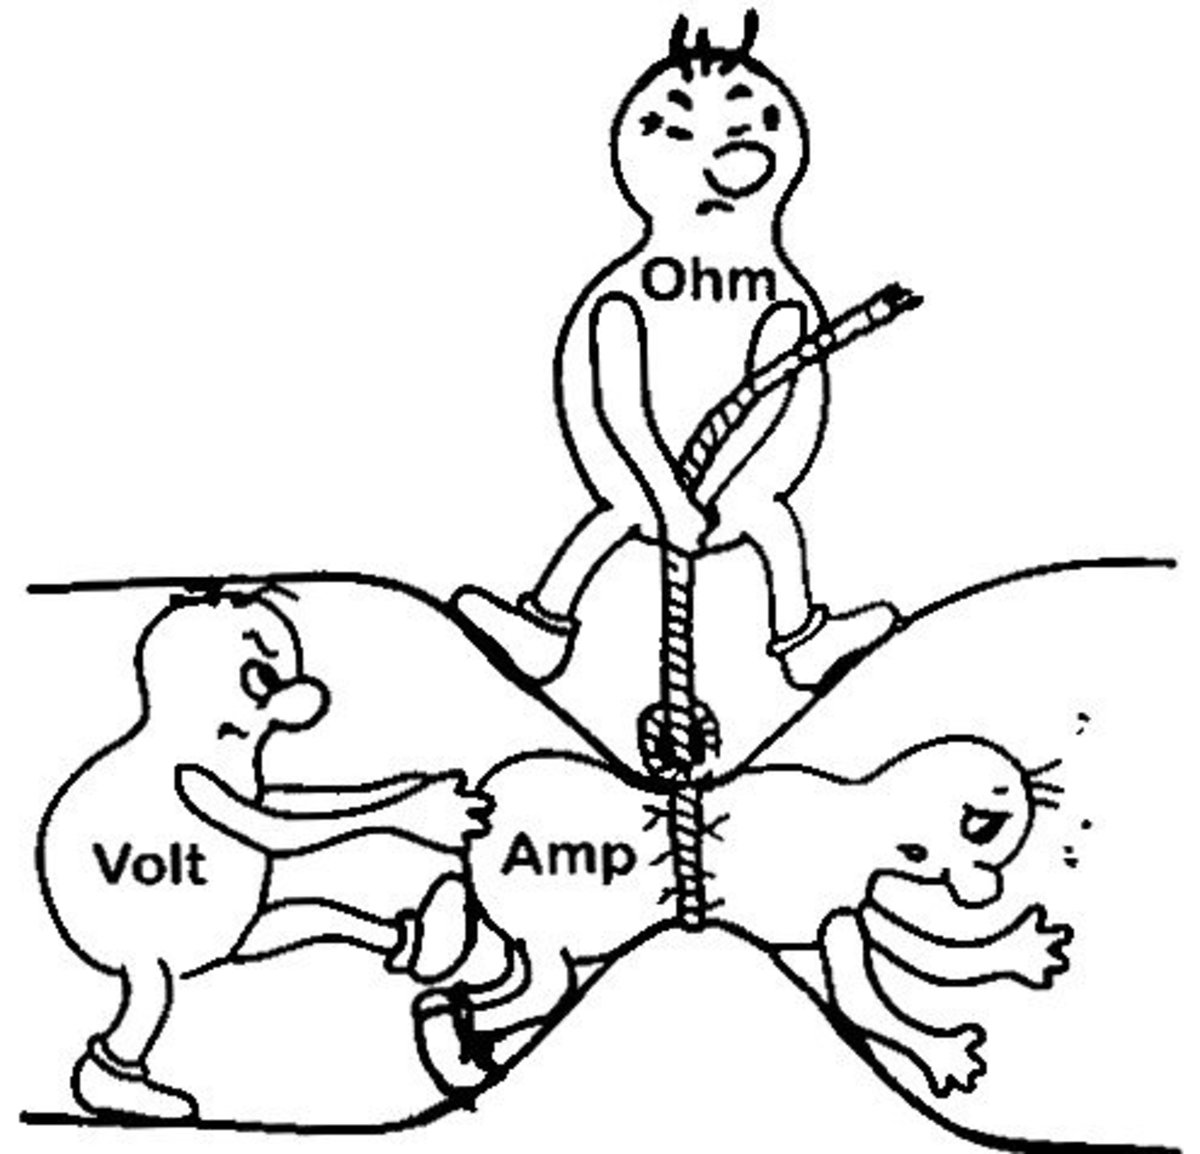 Volts forces current through the resistance of a circuit.